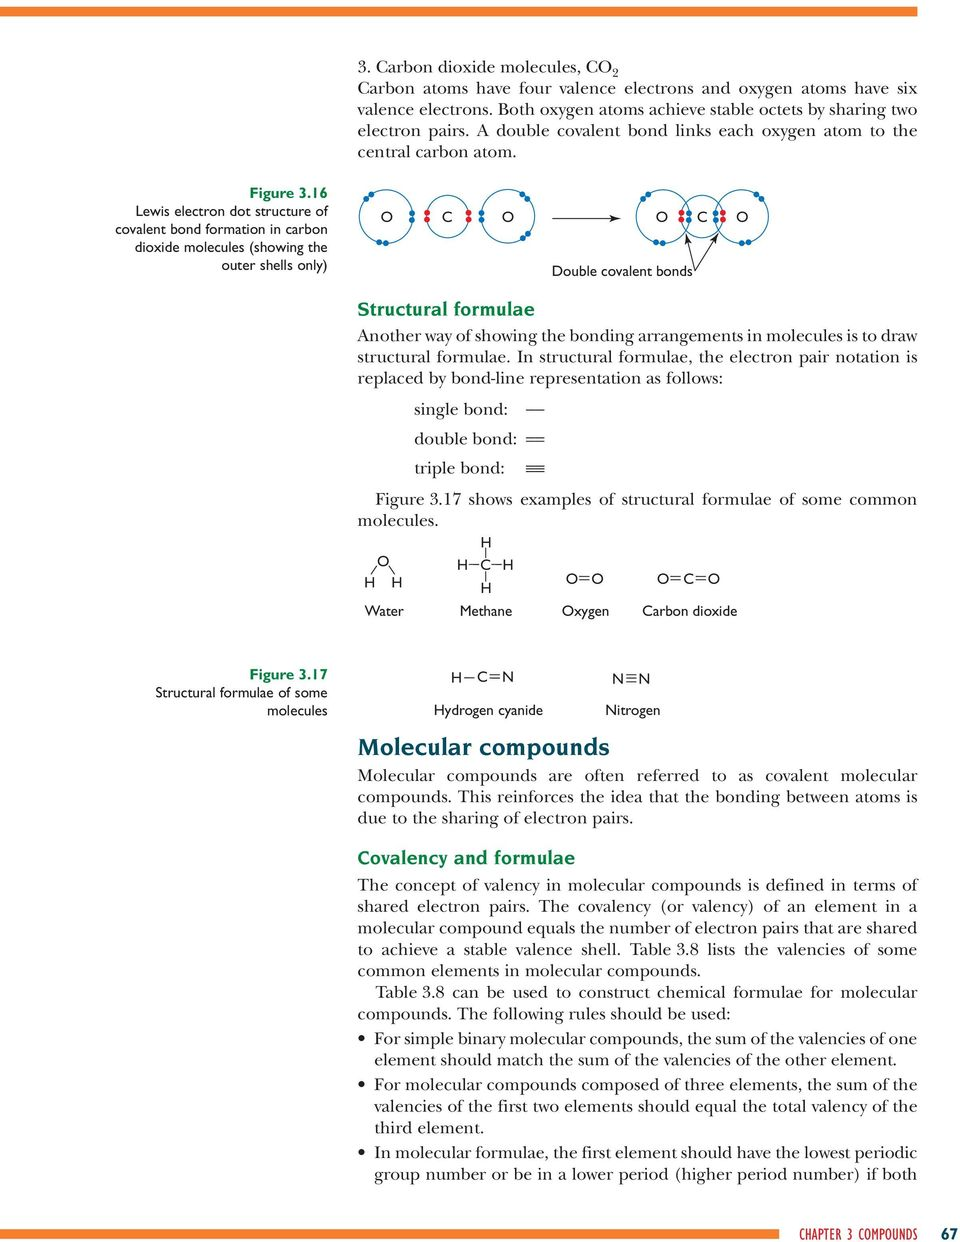 Compounds 8veizg Introduction In This Chapter Pdf Electron Shell Diagram For Oxygen The Next Two Shells Can Hold 8 16 Lewis Dot Structure Of Covalent Bond Formation Carbon Dioxide Molecules Showing